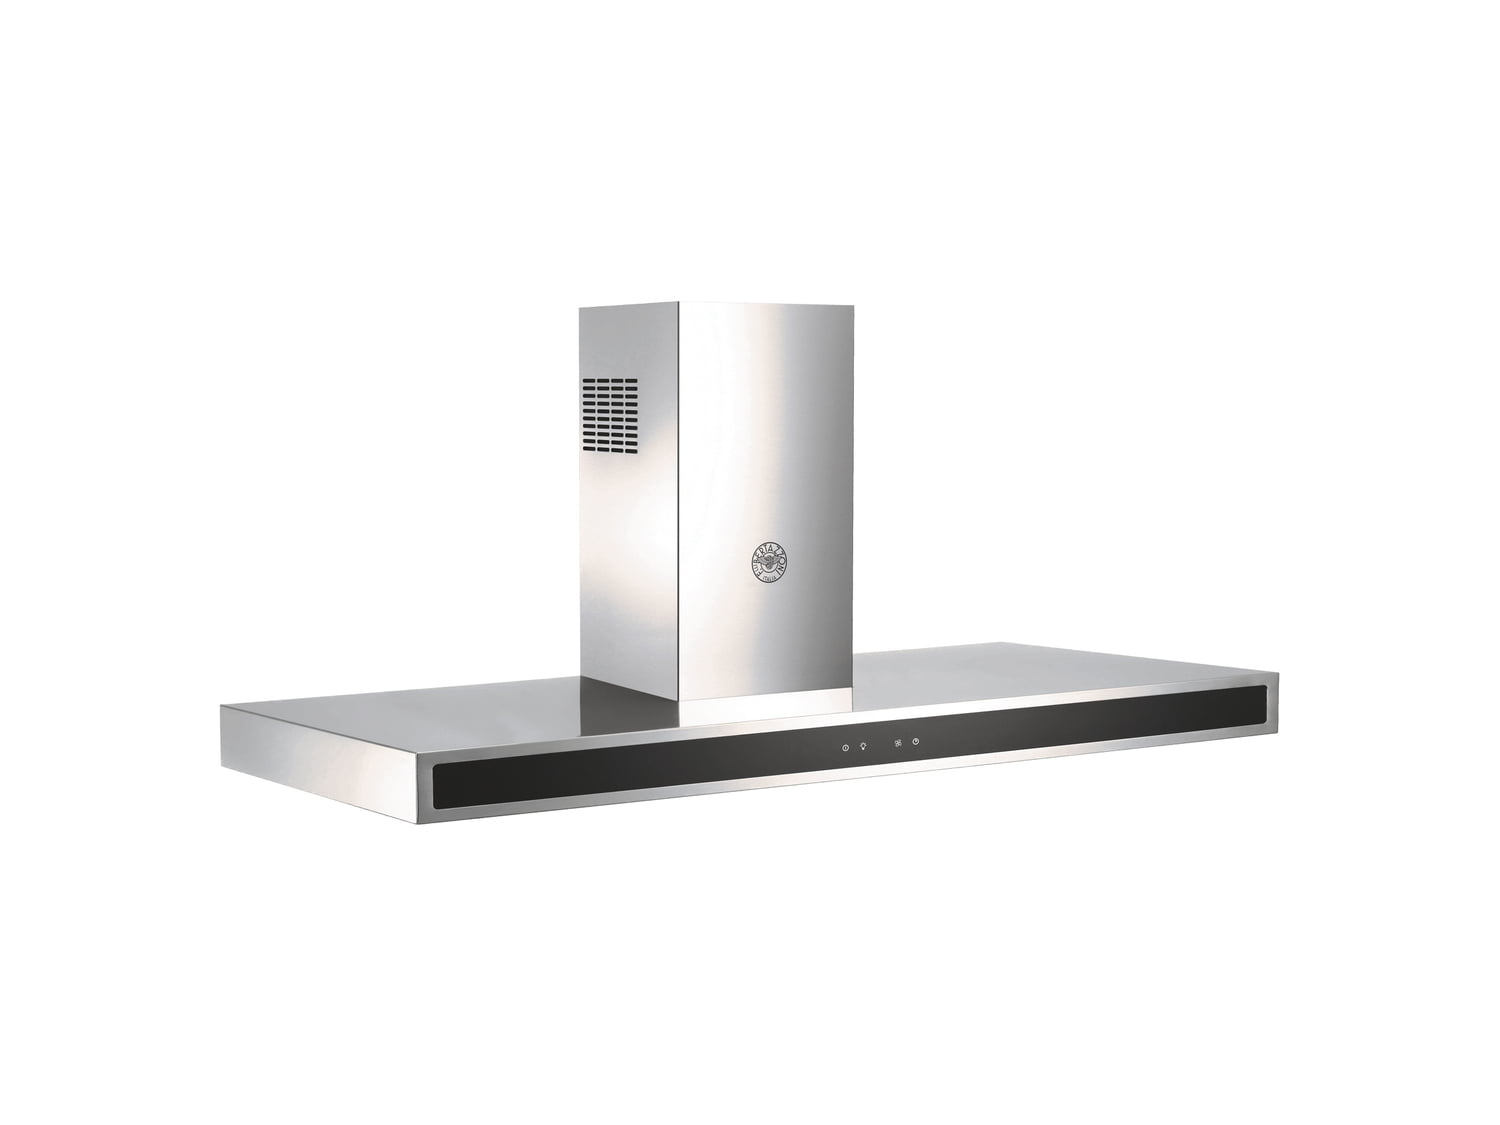 Load image into Gallery viewer, Bertazzoni KG48X 48 Wallmount Hood, Glass Front, 1 Motor 600 Cfm Stainless Steel